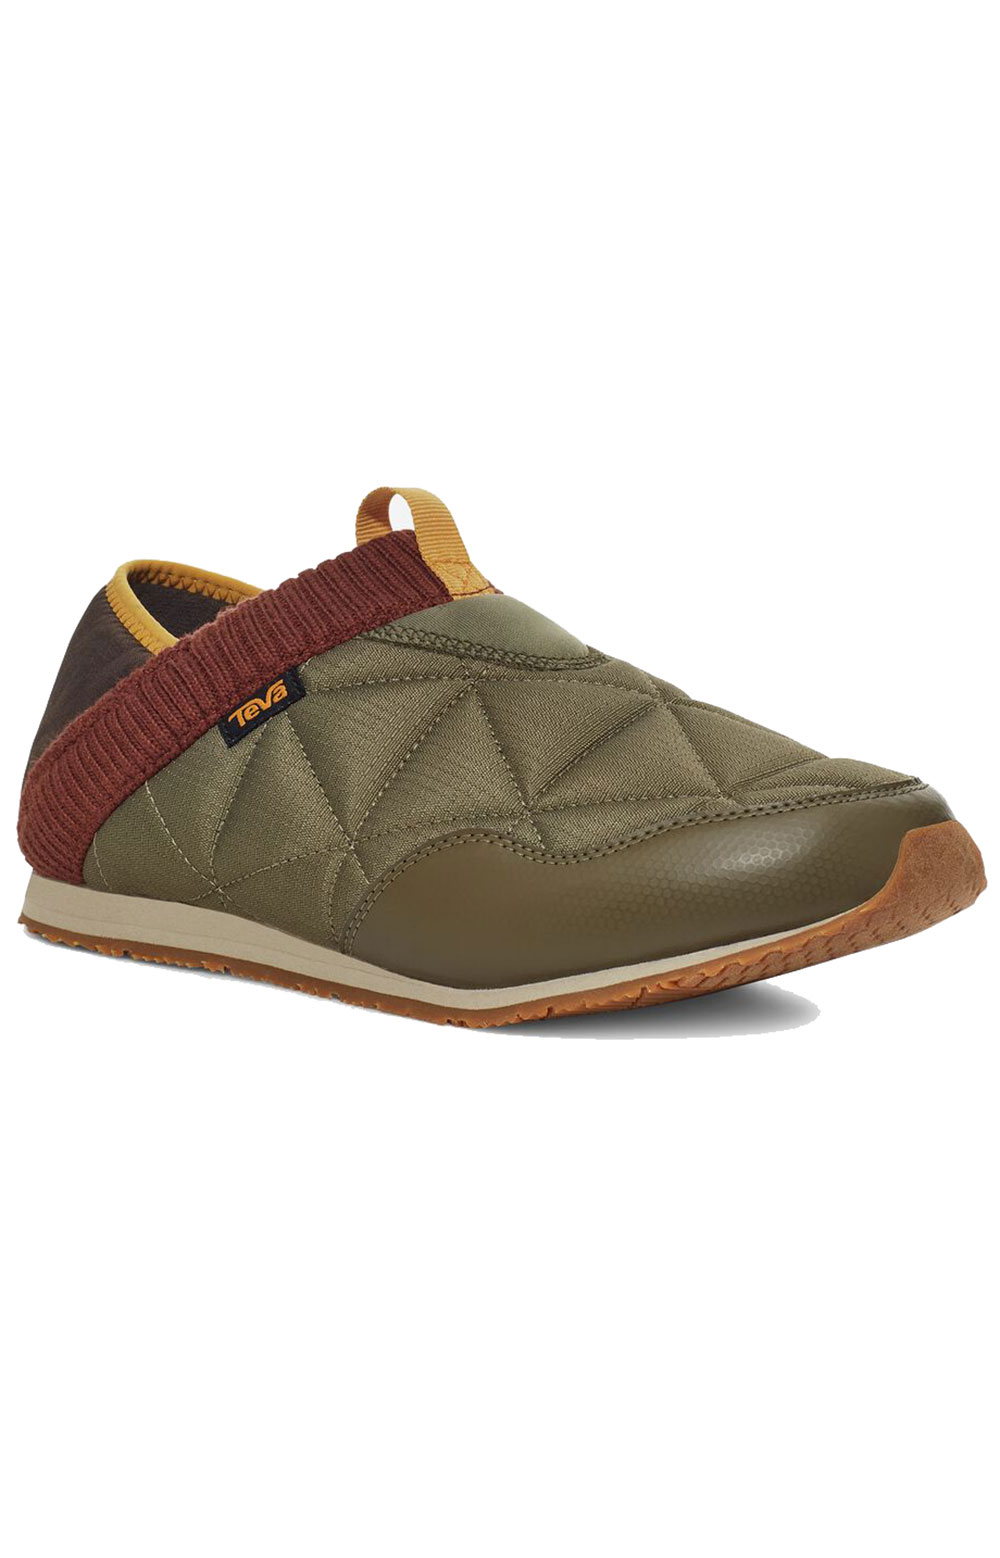 (1125472) ReEMBER Moccasins - Olive/Brown Multi  2